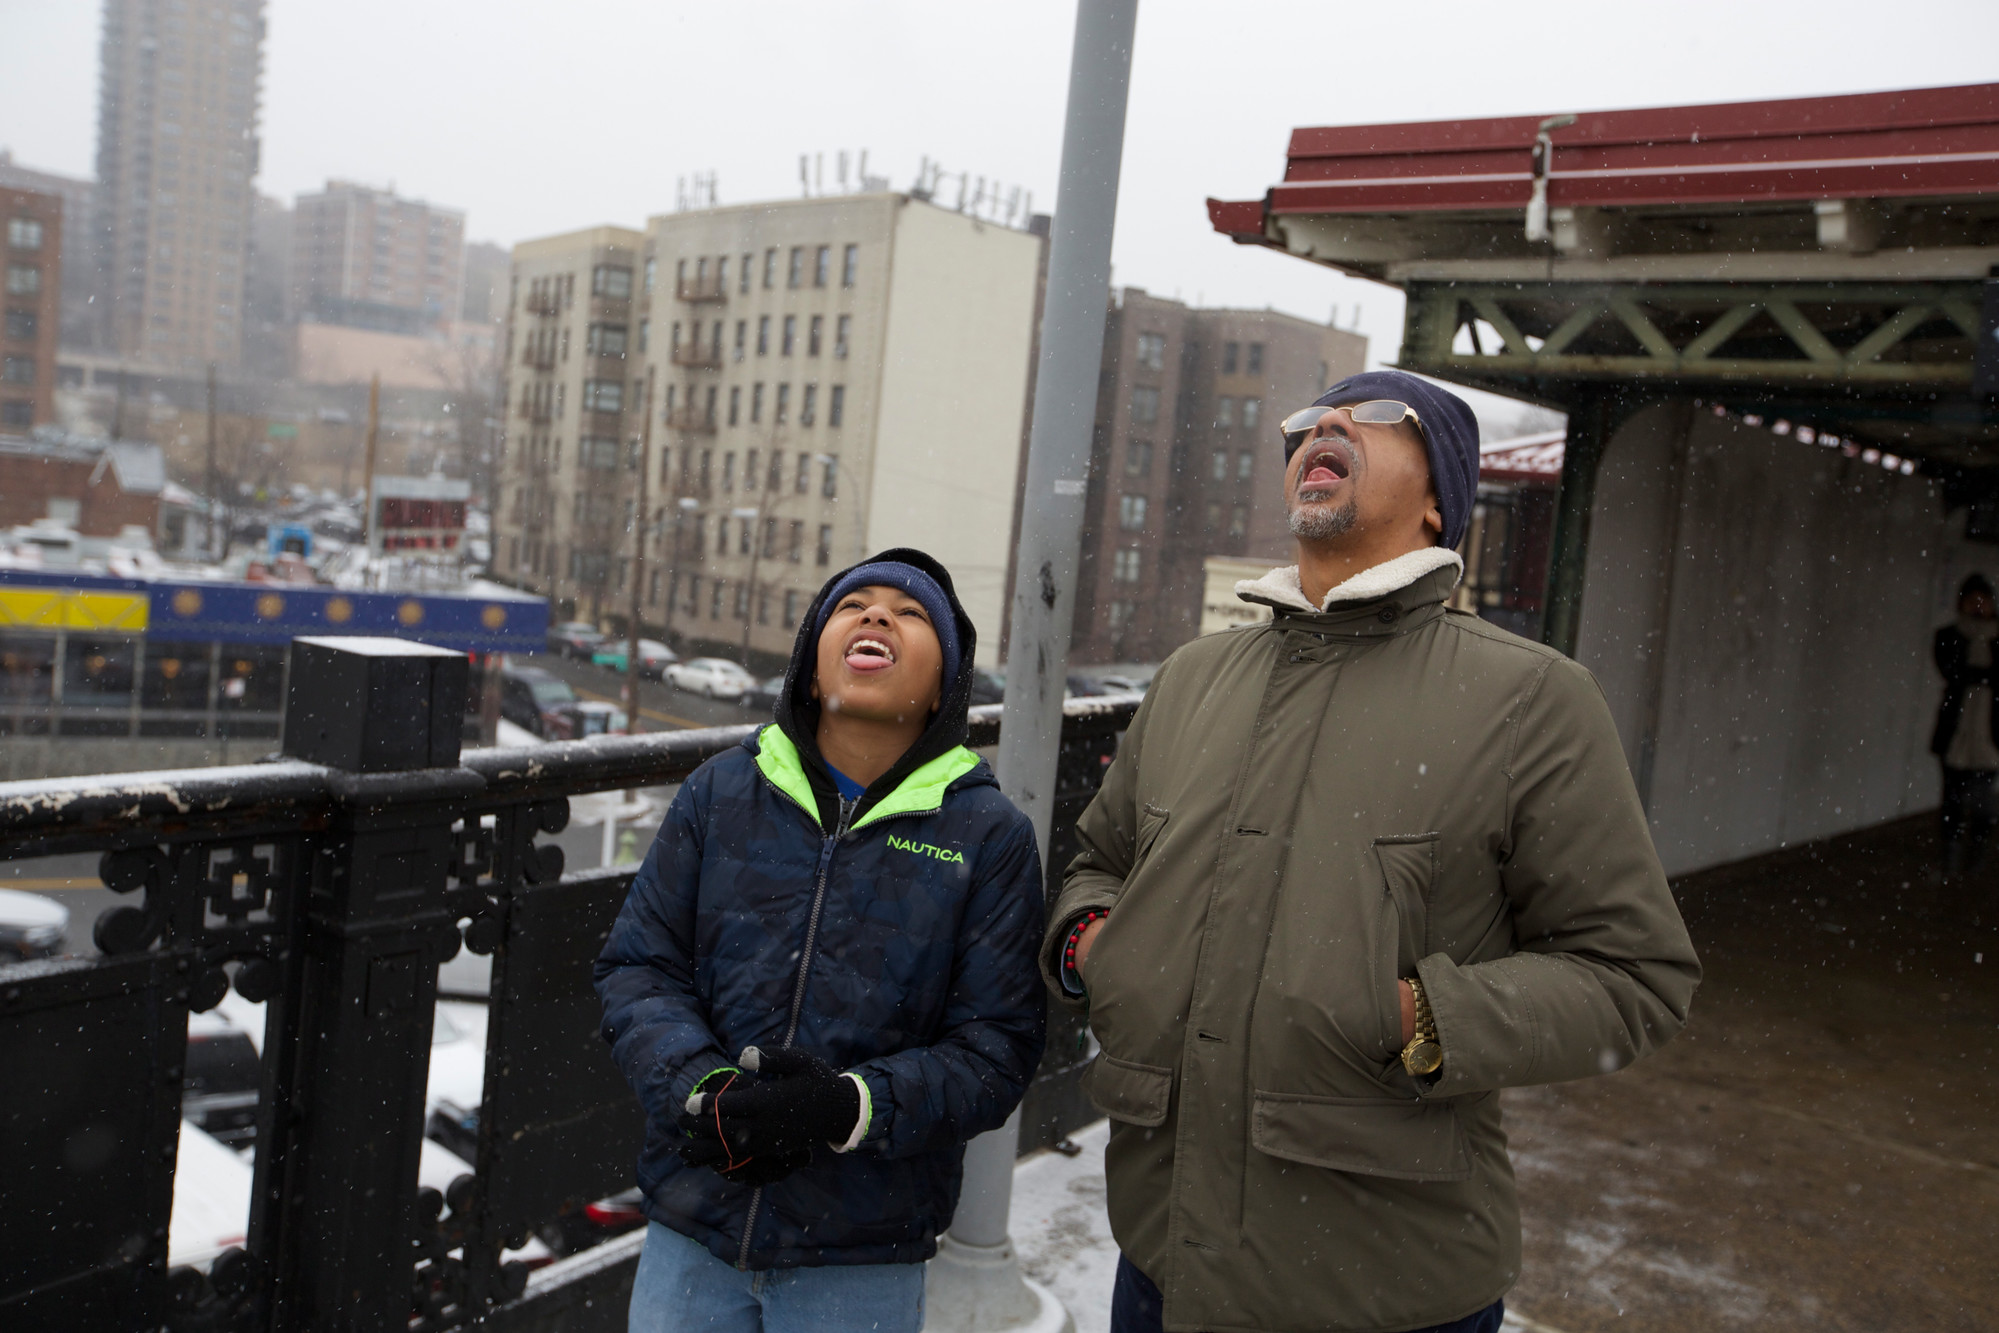 Jorge Piña, 56, and his son Jorge Piña, 11, stick their tongues out to catch snowflakes while they wait for the 1 Train at West 238th Street on Monday.